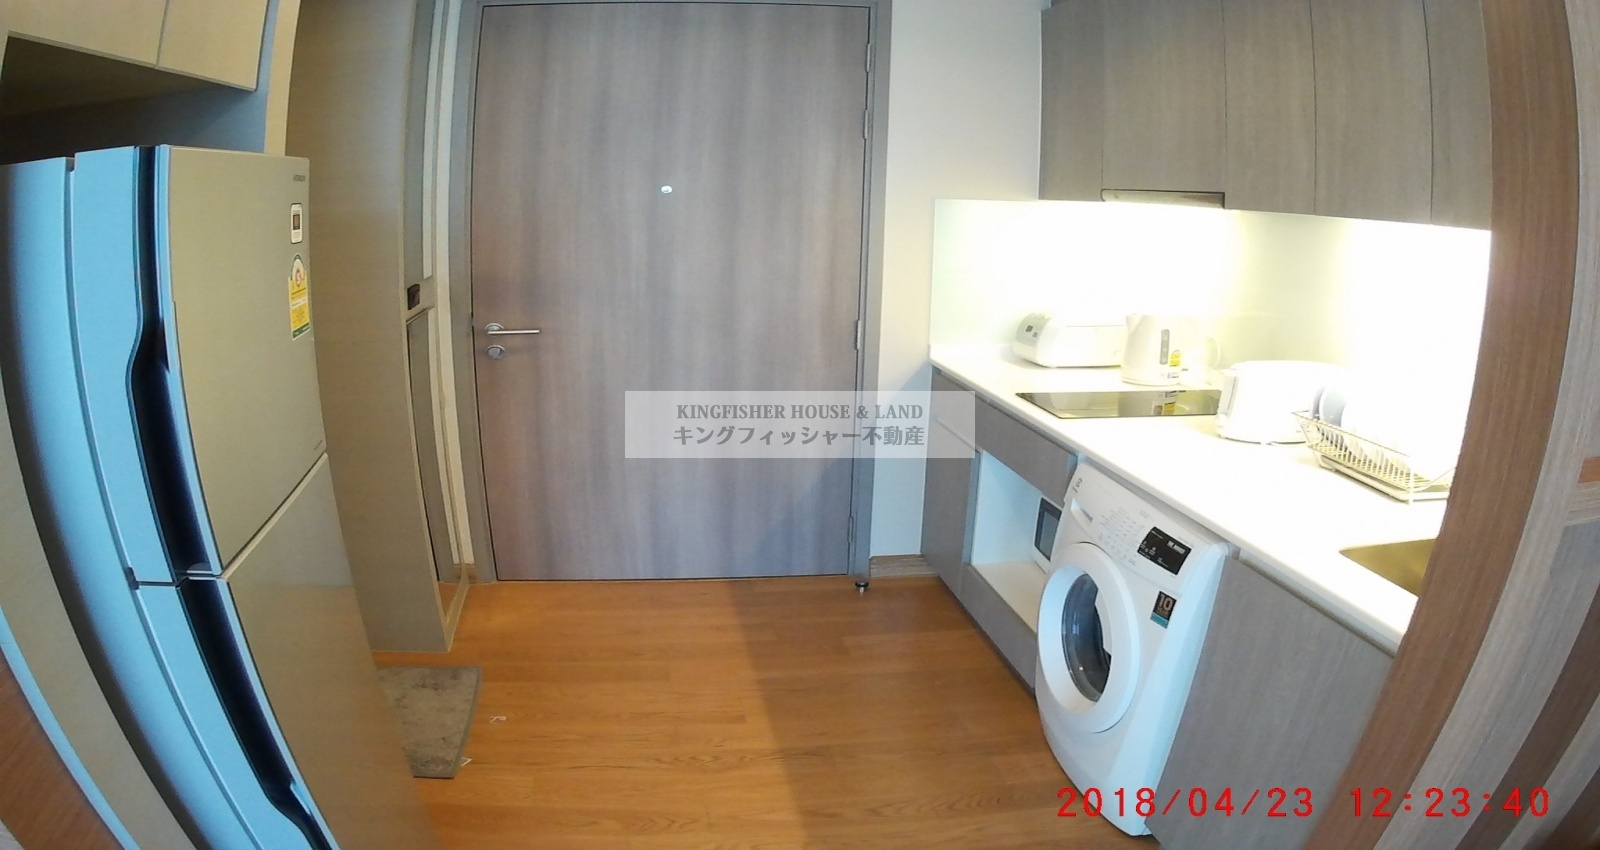 1 Bedrooms, Condominium, For Rent, 1 Bathrooms, Listing ID 1264, Sriracha, Thailand, 20110,